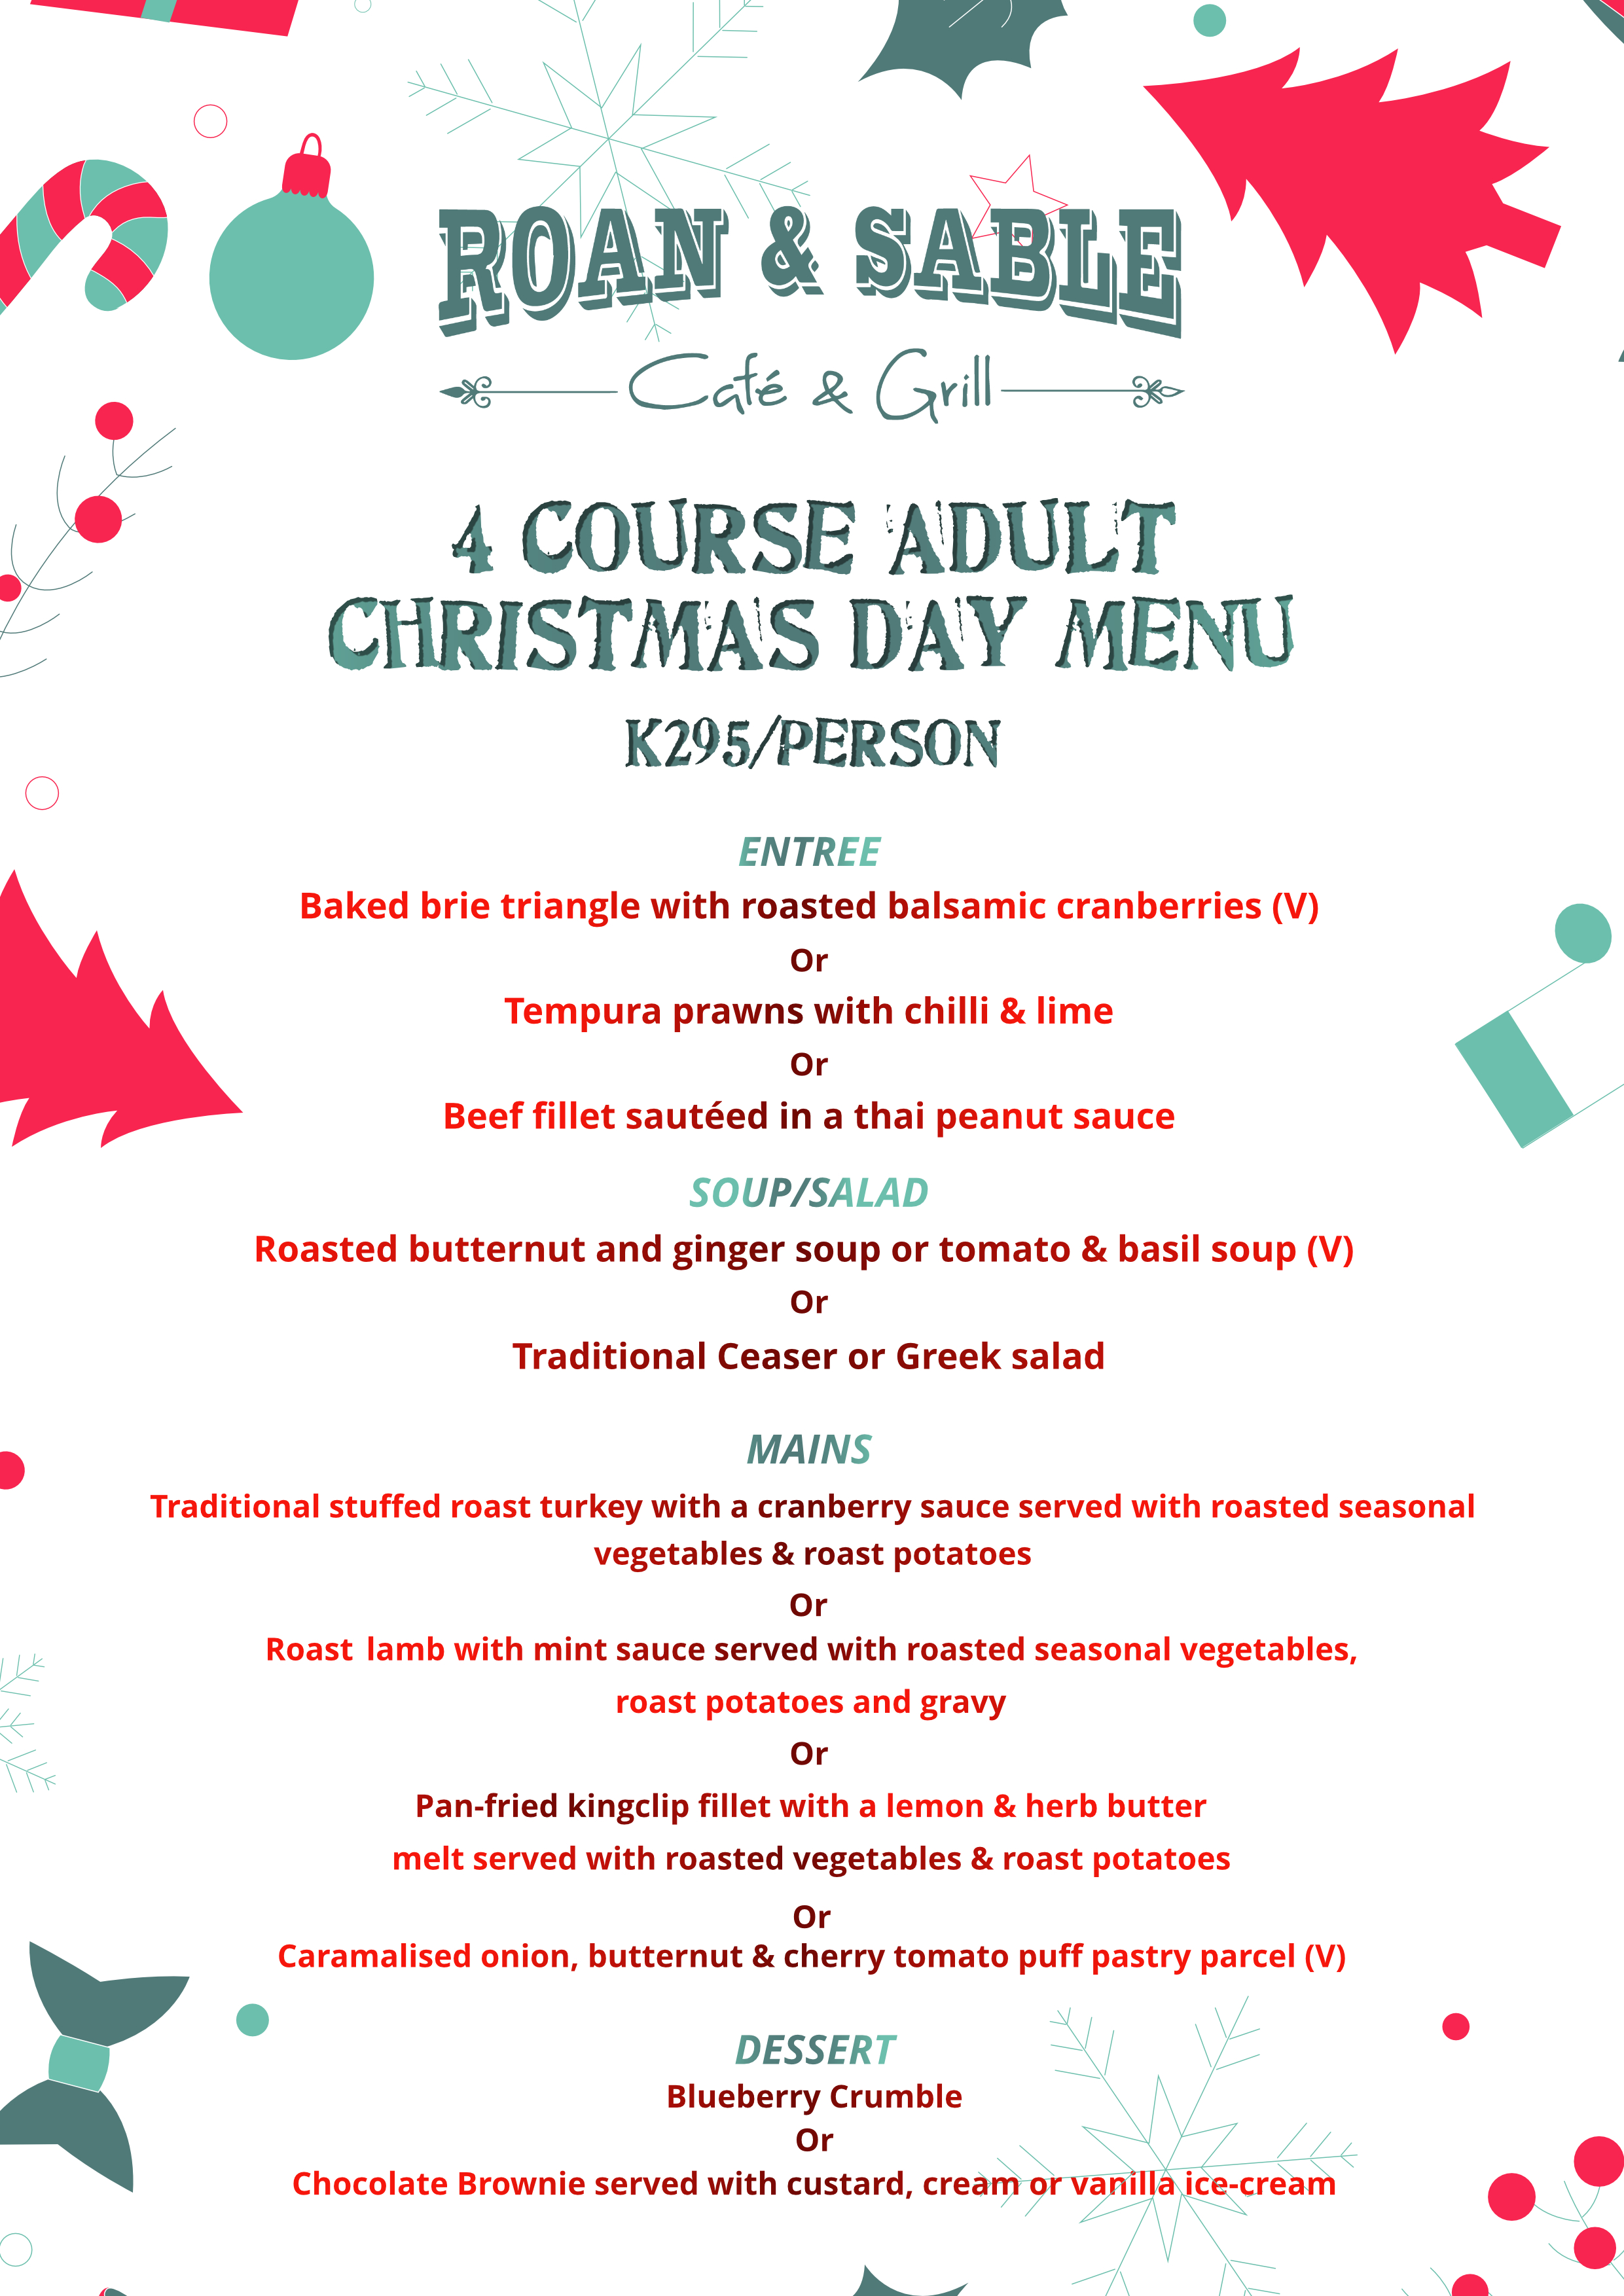 10 12 2018 Christmas Day Menus For Adults Amp Kids At Roan